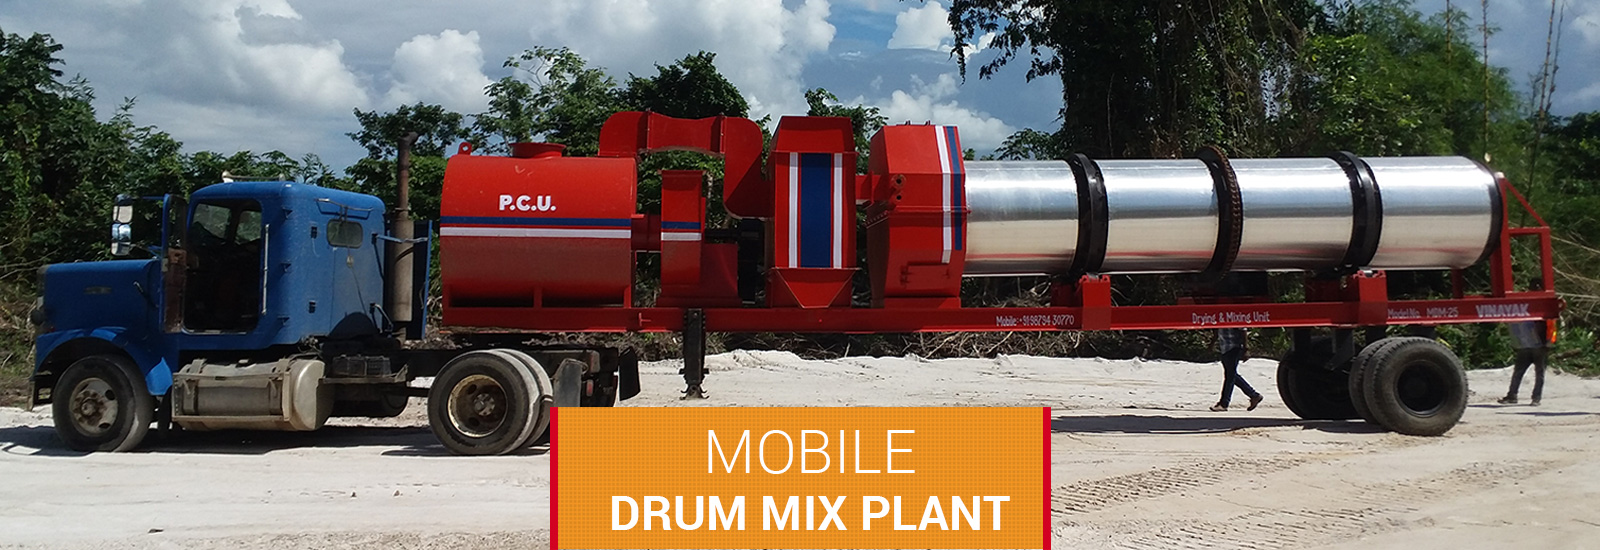 road equipment manufacturers,Mobile Drum mix plant in Mumbai